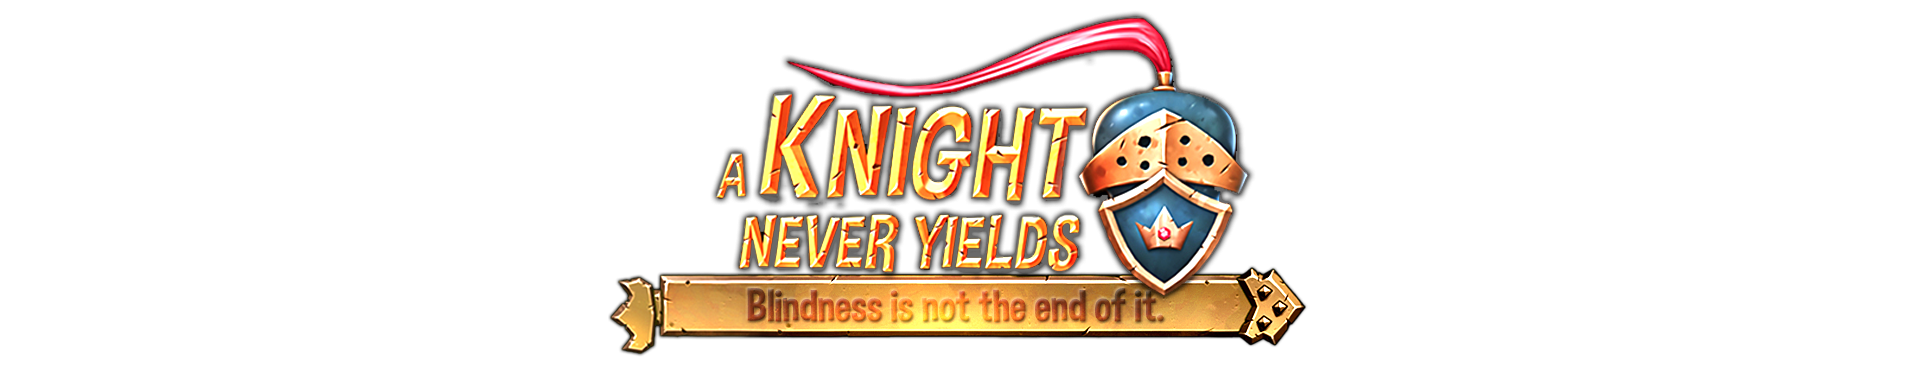 A Knight Never Yields - header image & link to homepage